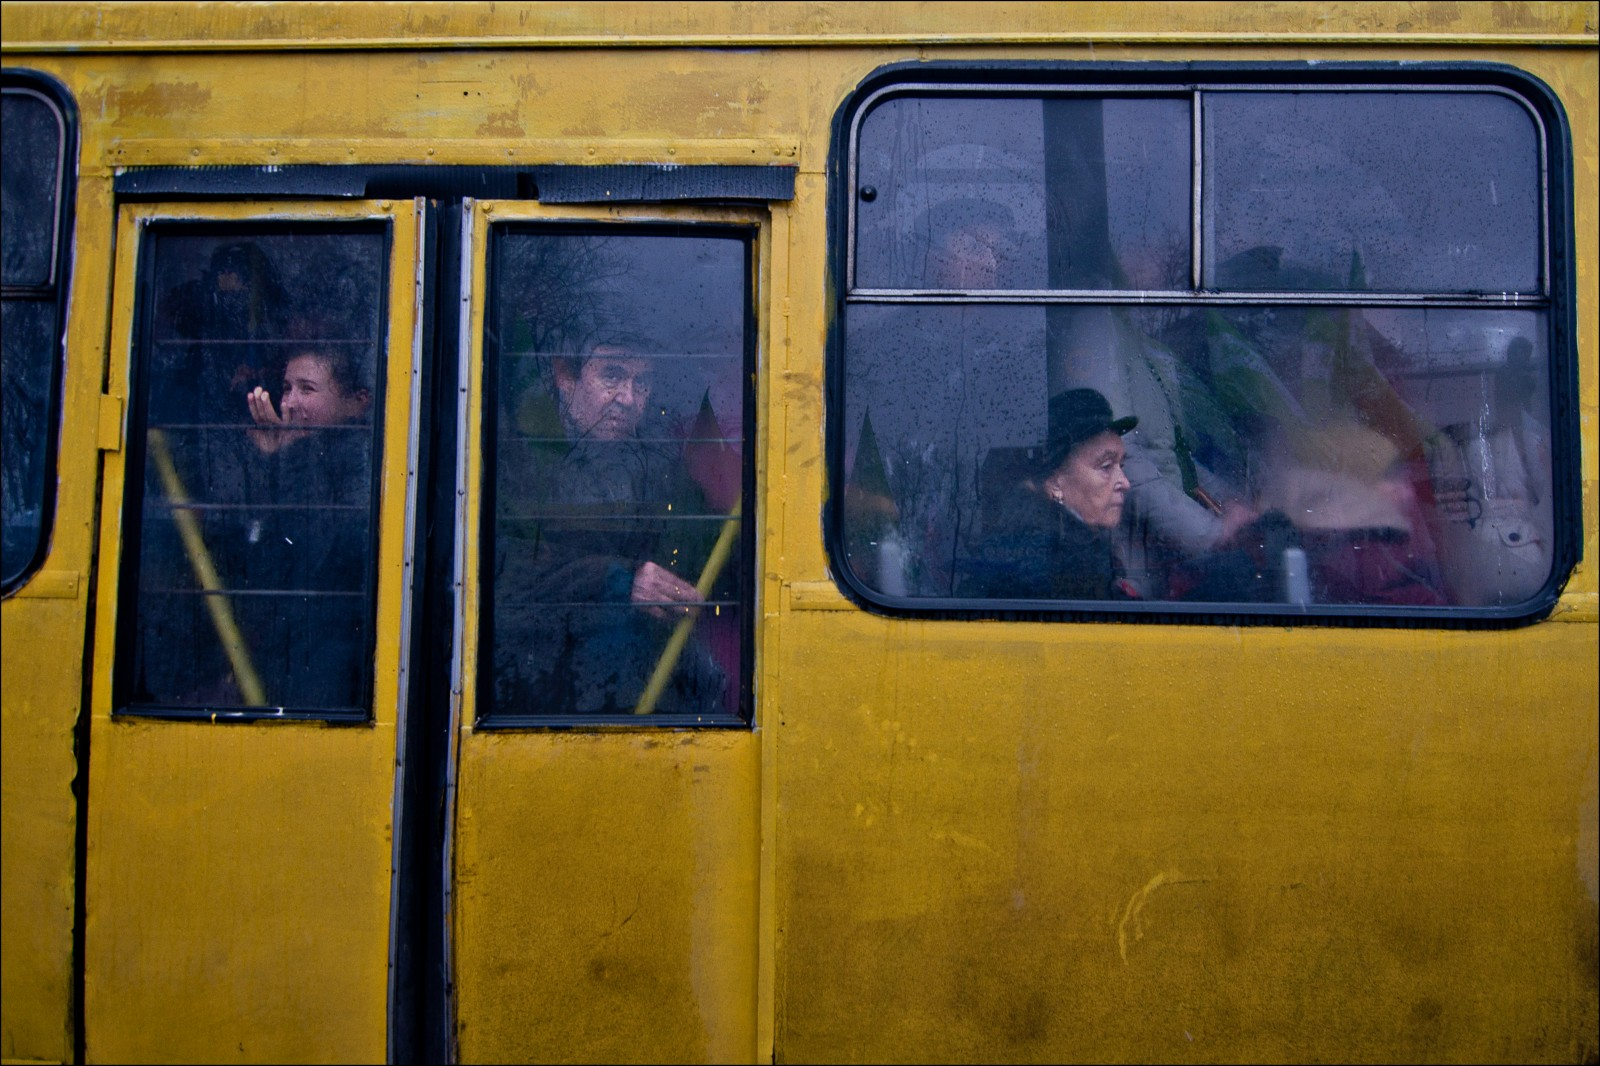 Ukraine: passengers on a crowded bus stare out at an anti-government protest reflected in the window